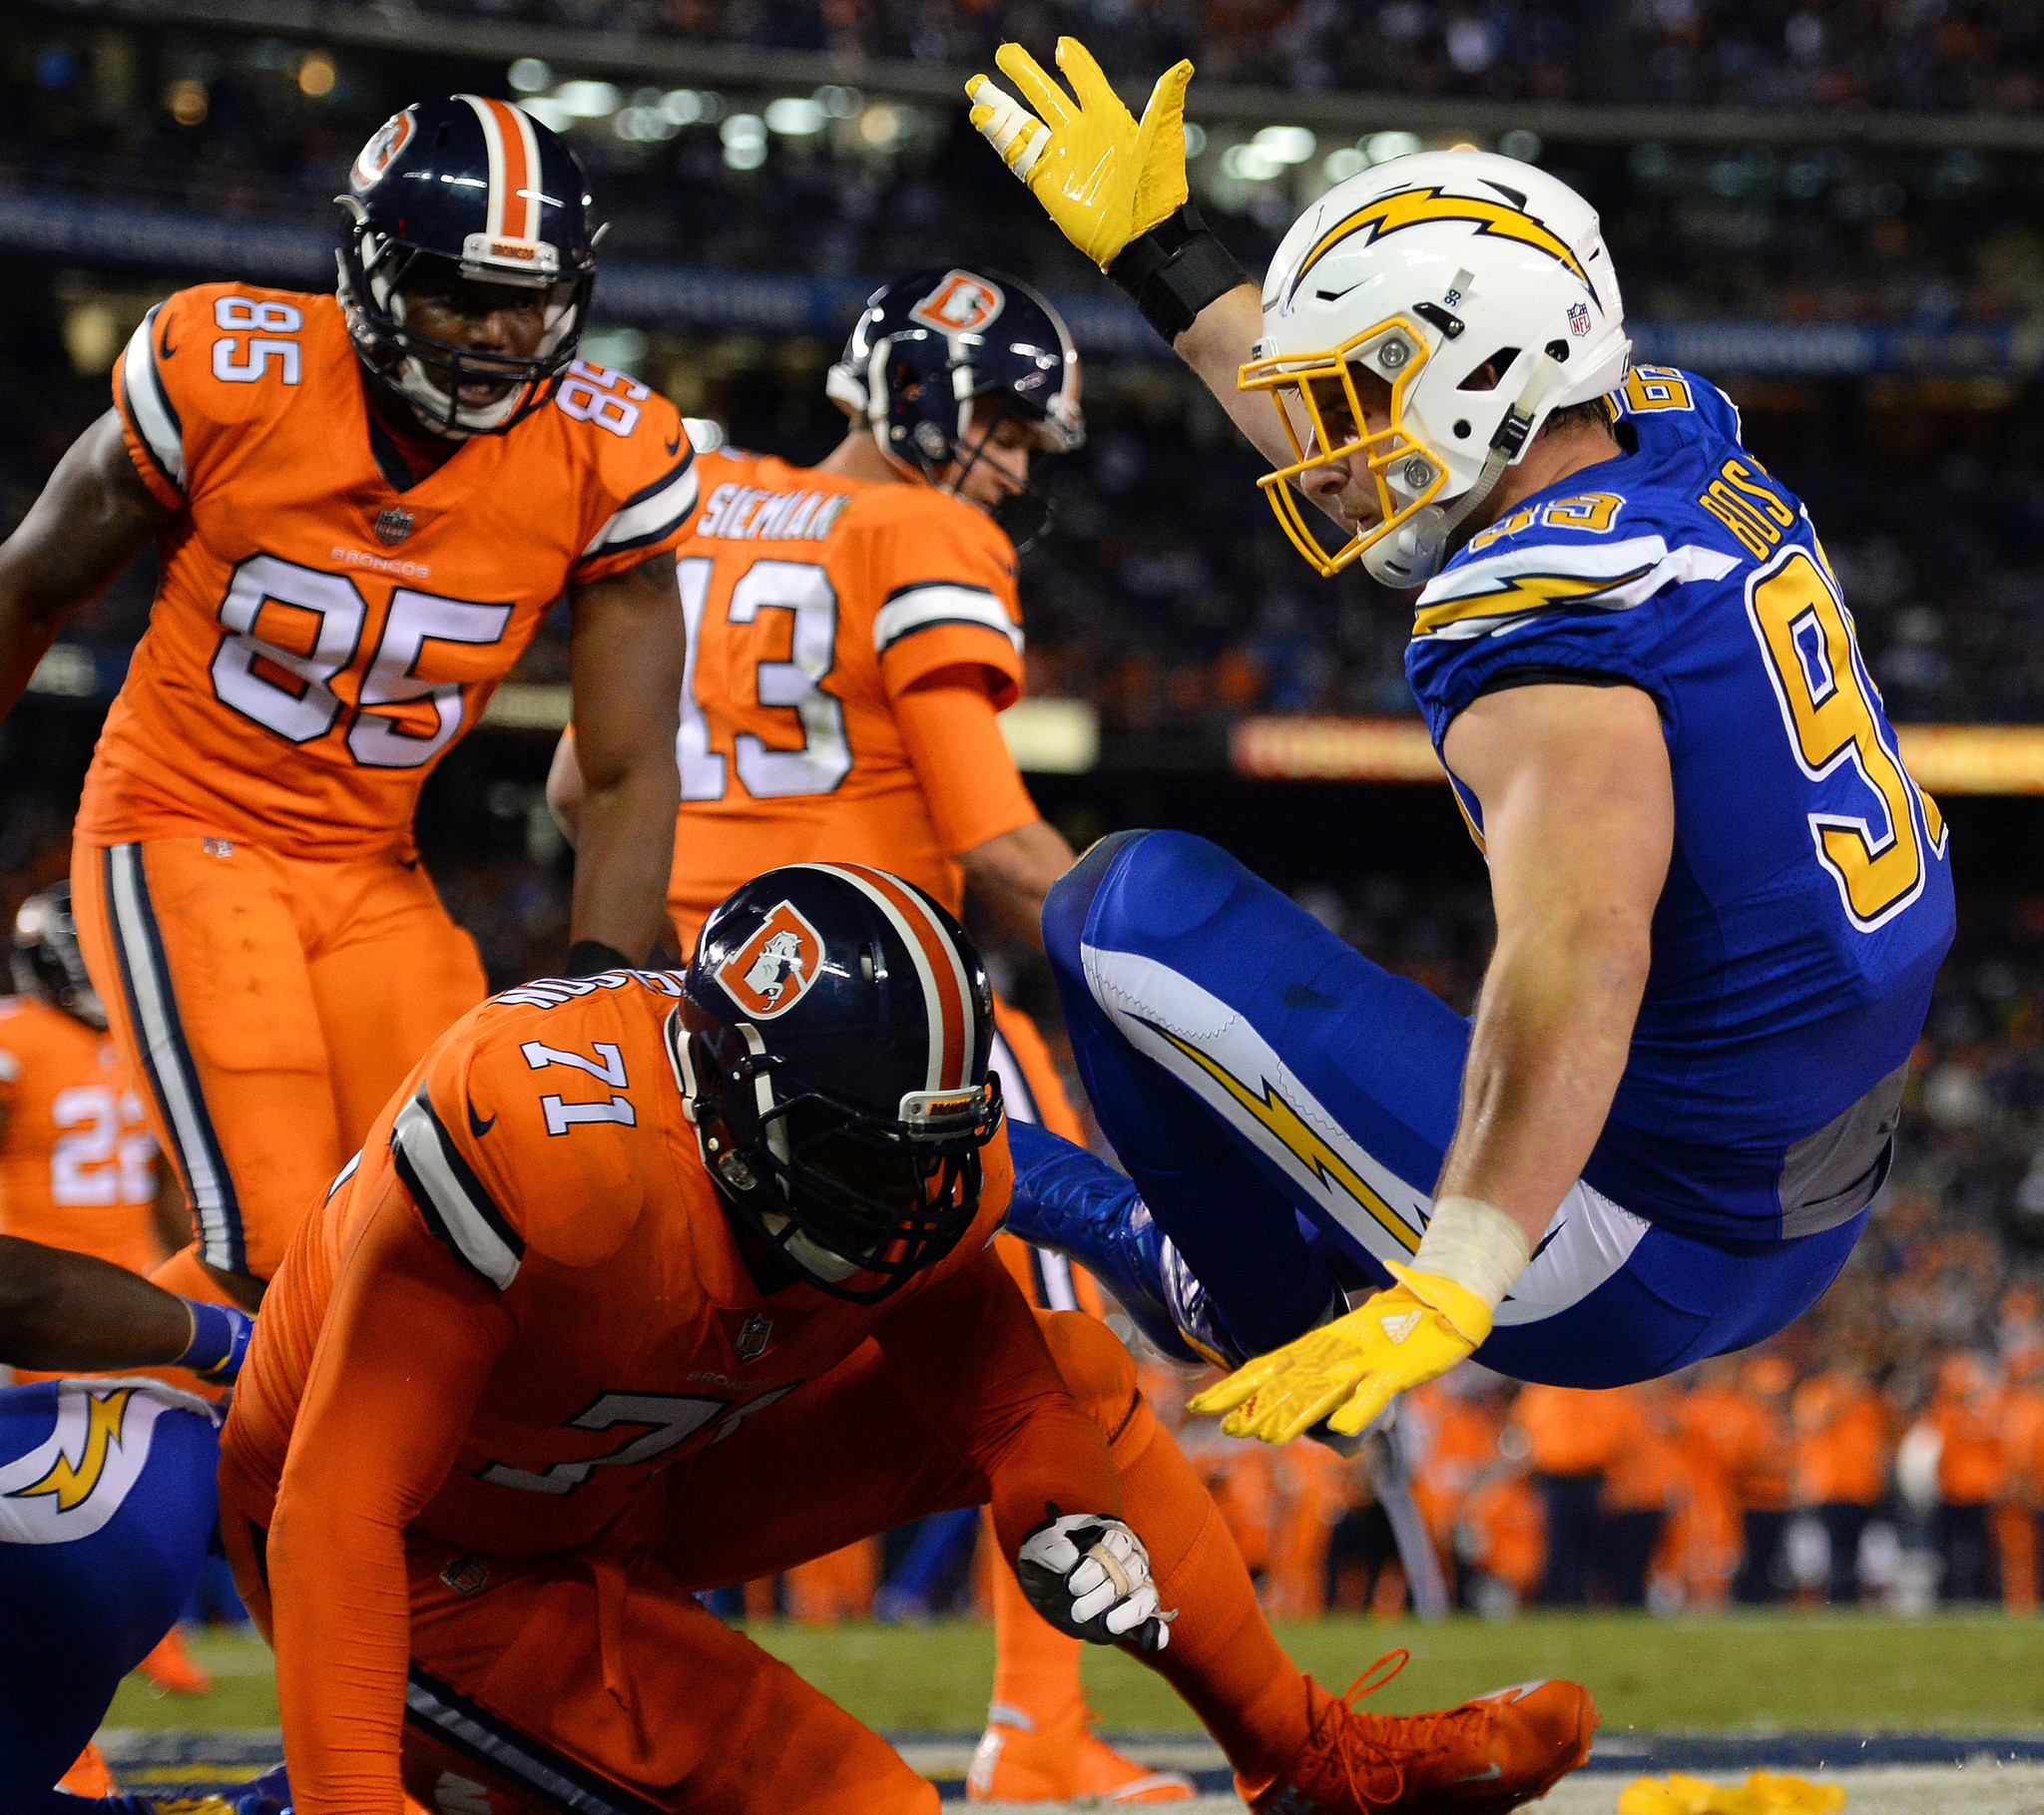 Sd-sp-kras-bosa-chargers-ohio-state-broncos-20161027